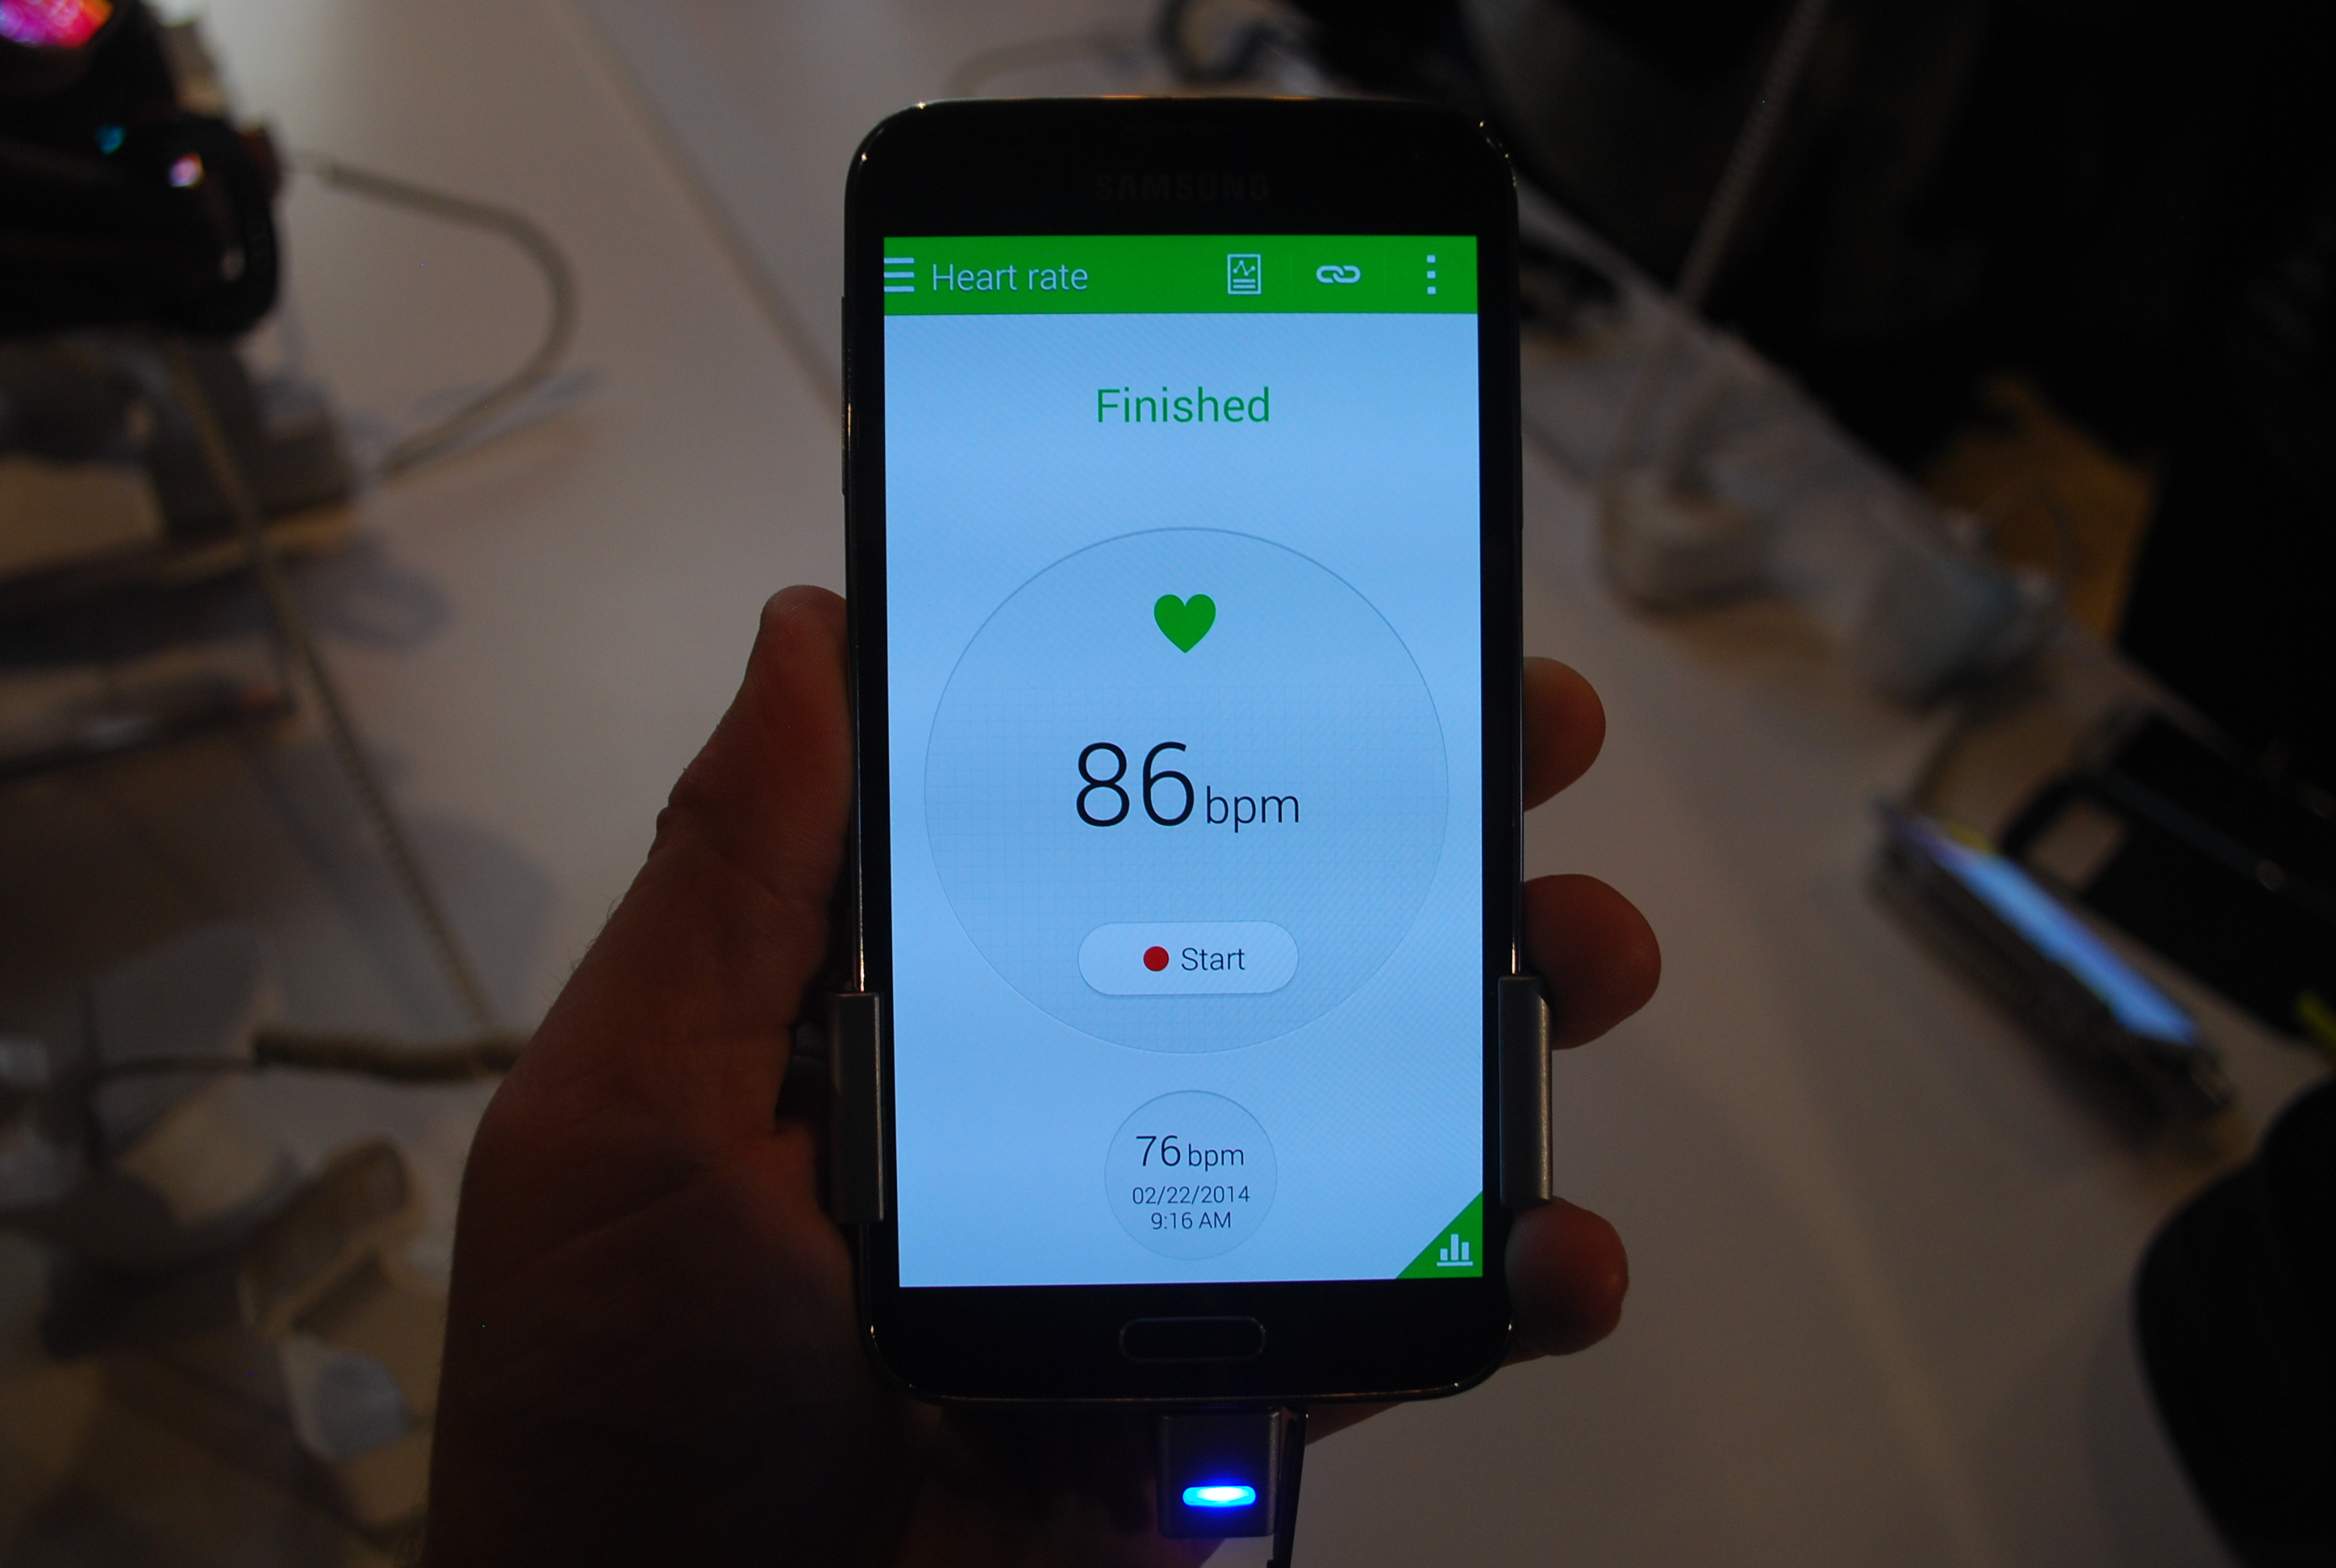 Galaxy S5 heart rate